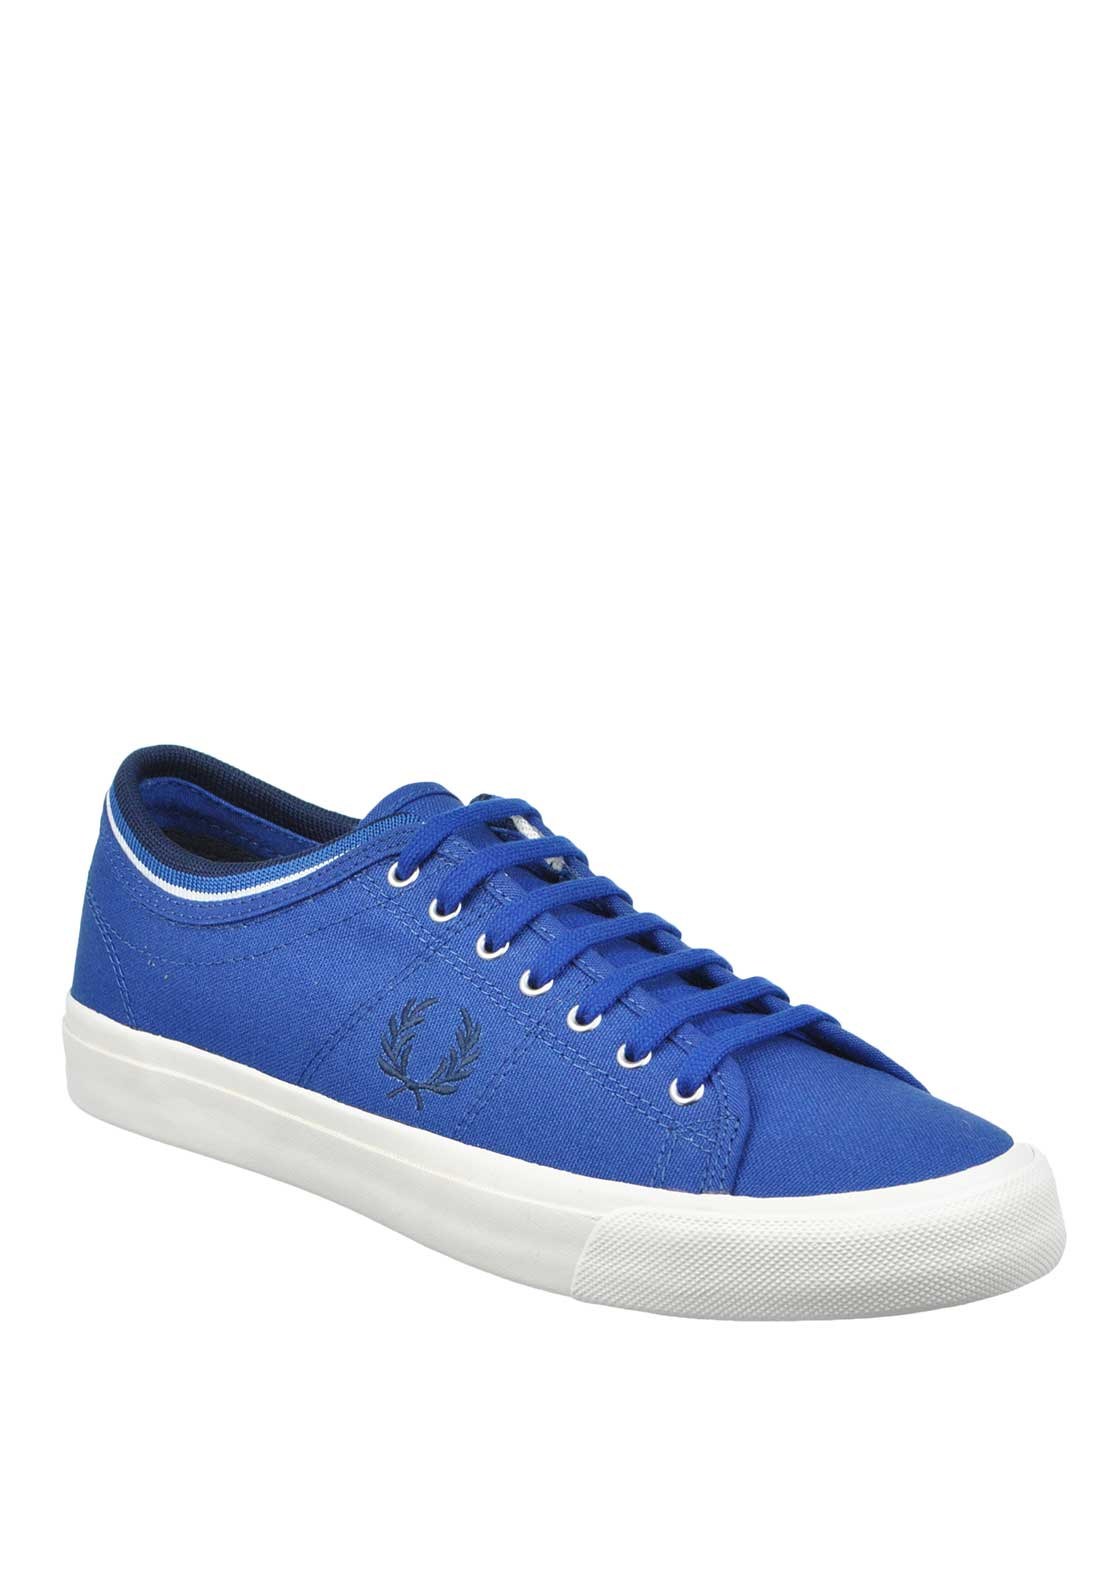 Fred Perry Kendrick Cotton Canvas Trainer, Royal Blue